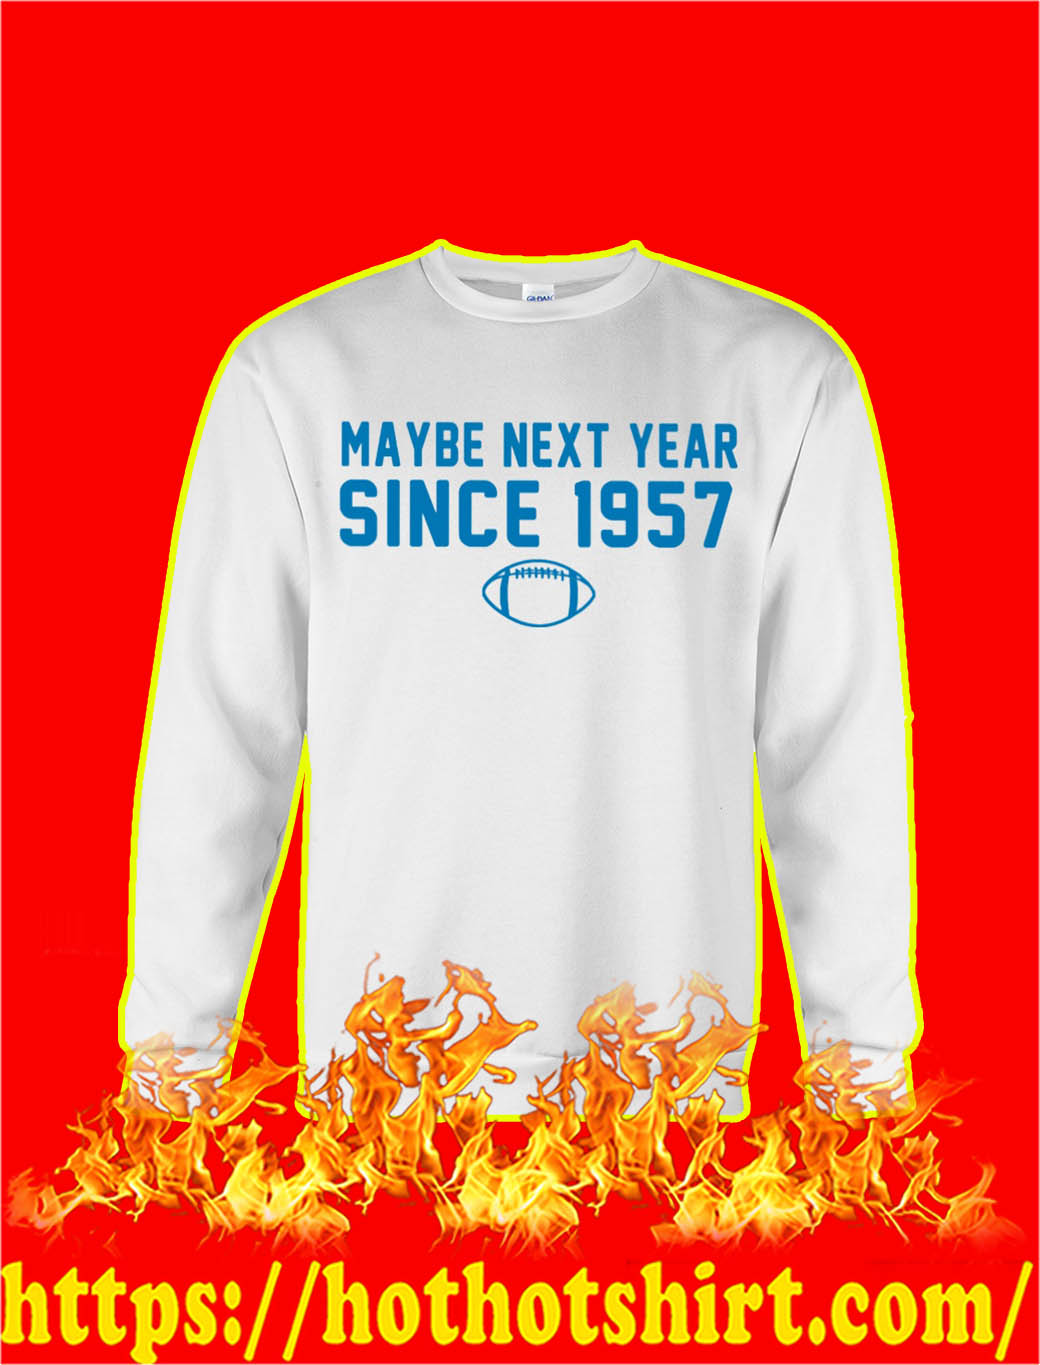 Maybe Next Year Since 1957 sweatshirt